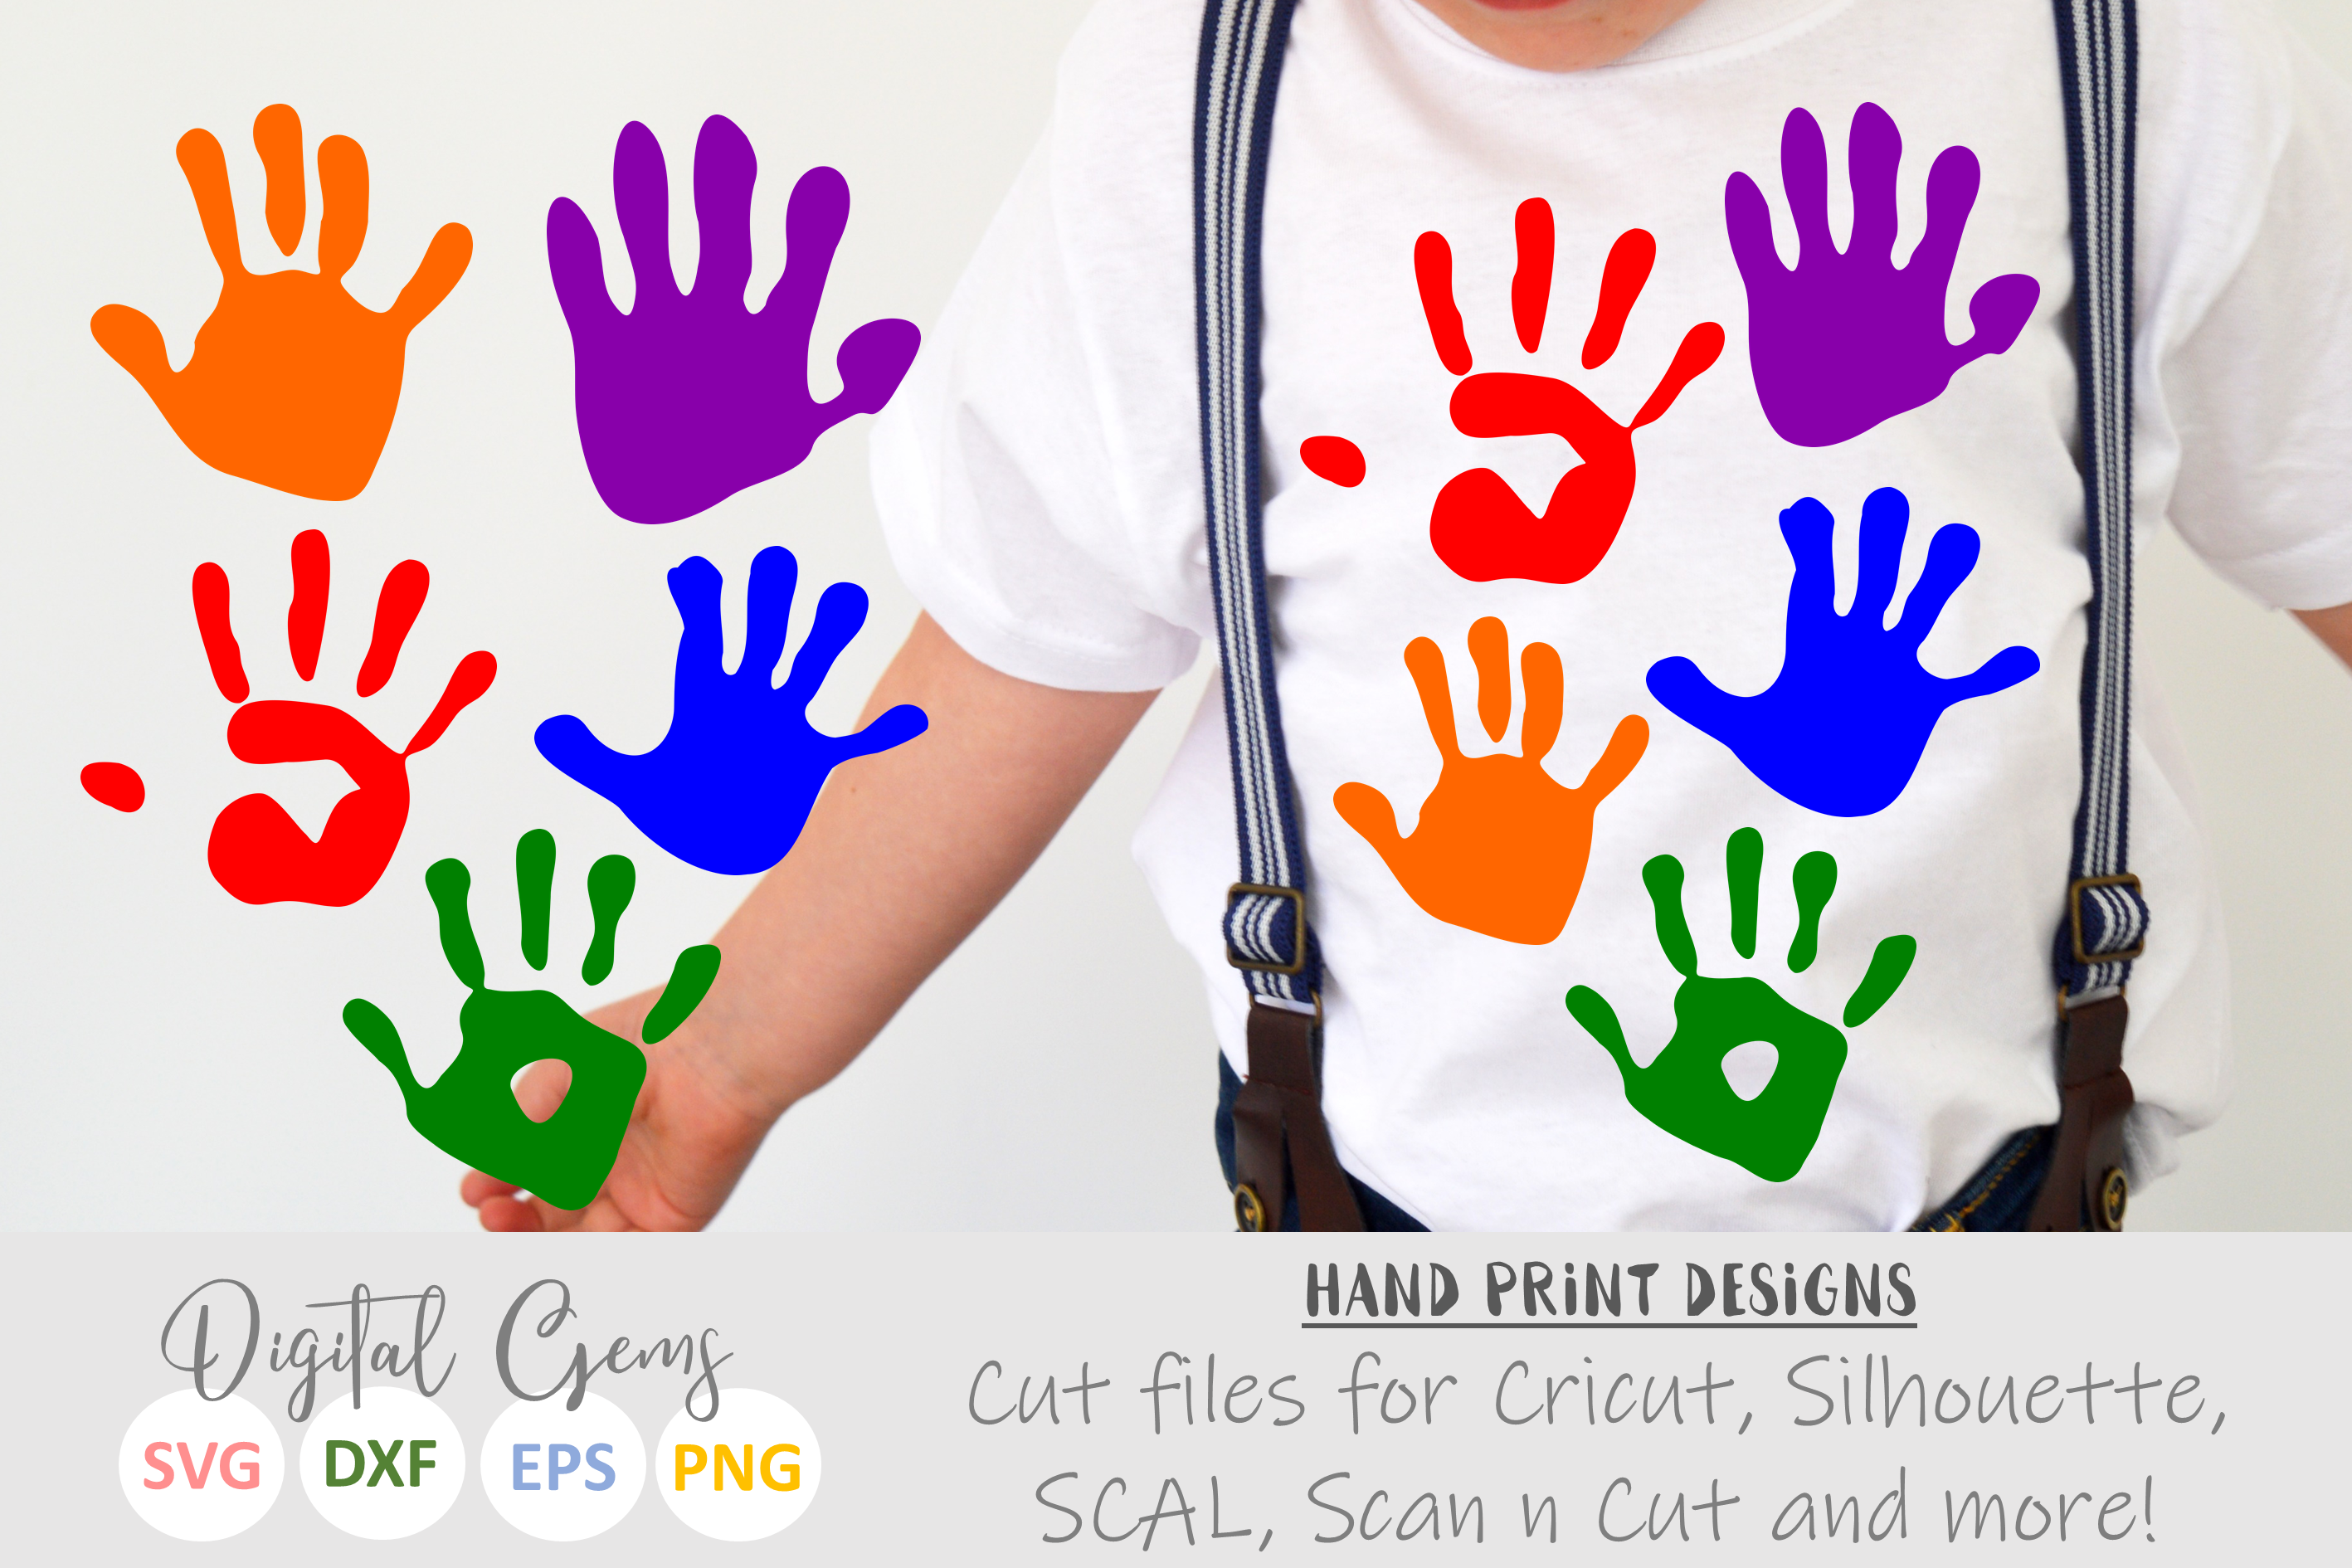 Hand Print SVG / PNG / DXF Files example image 1